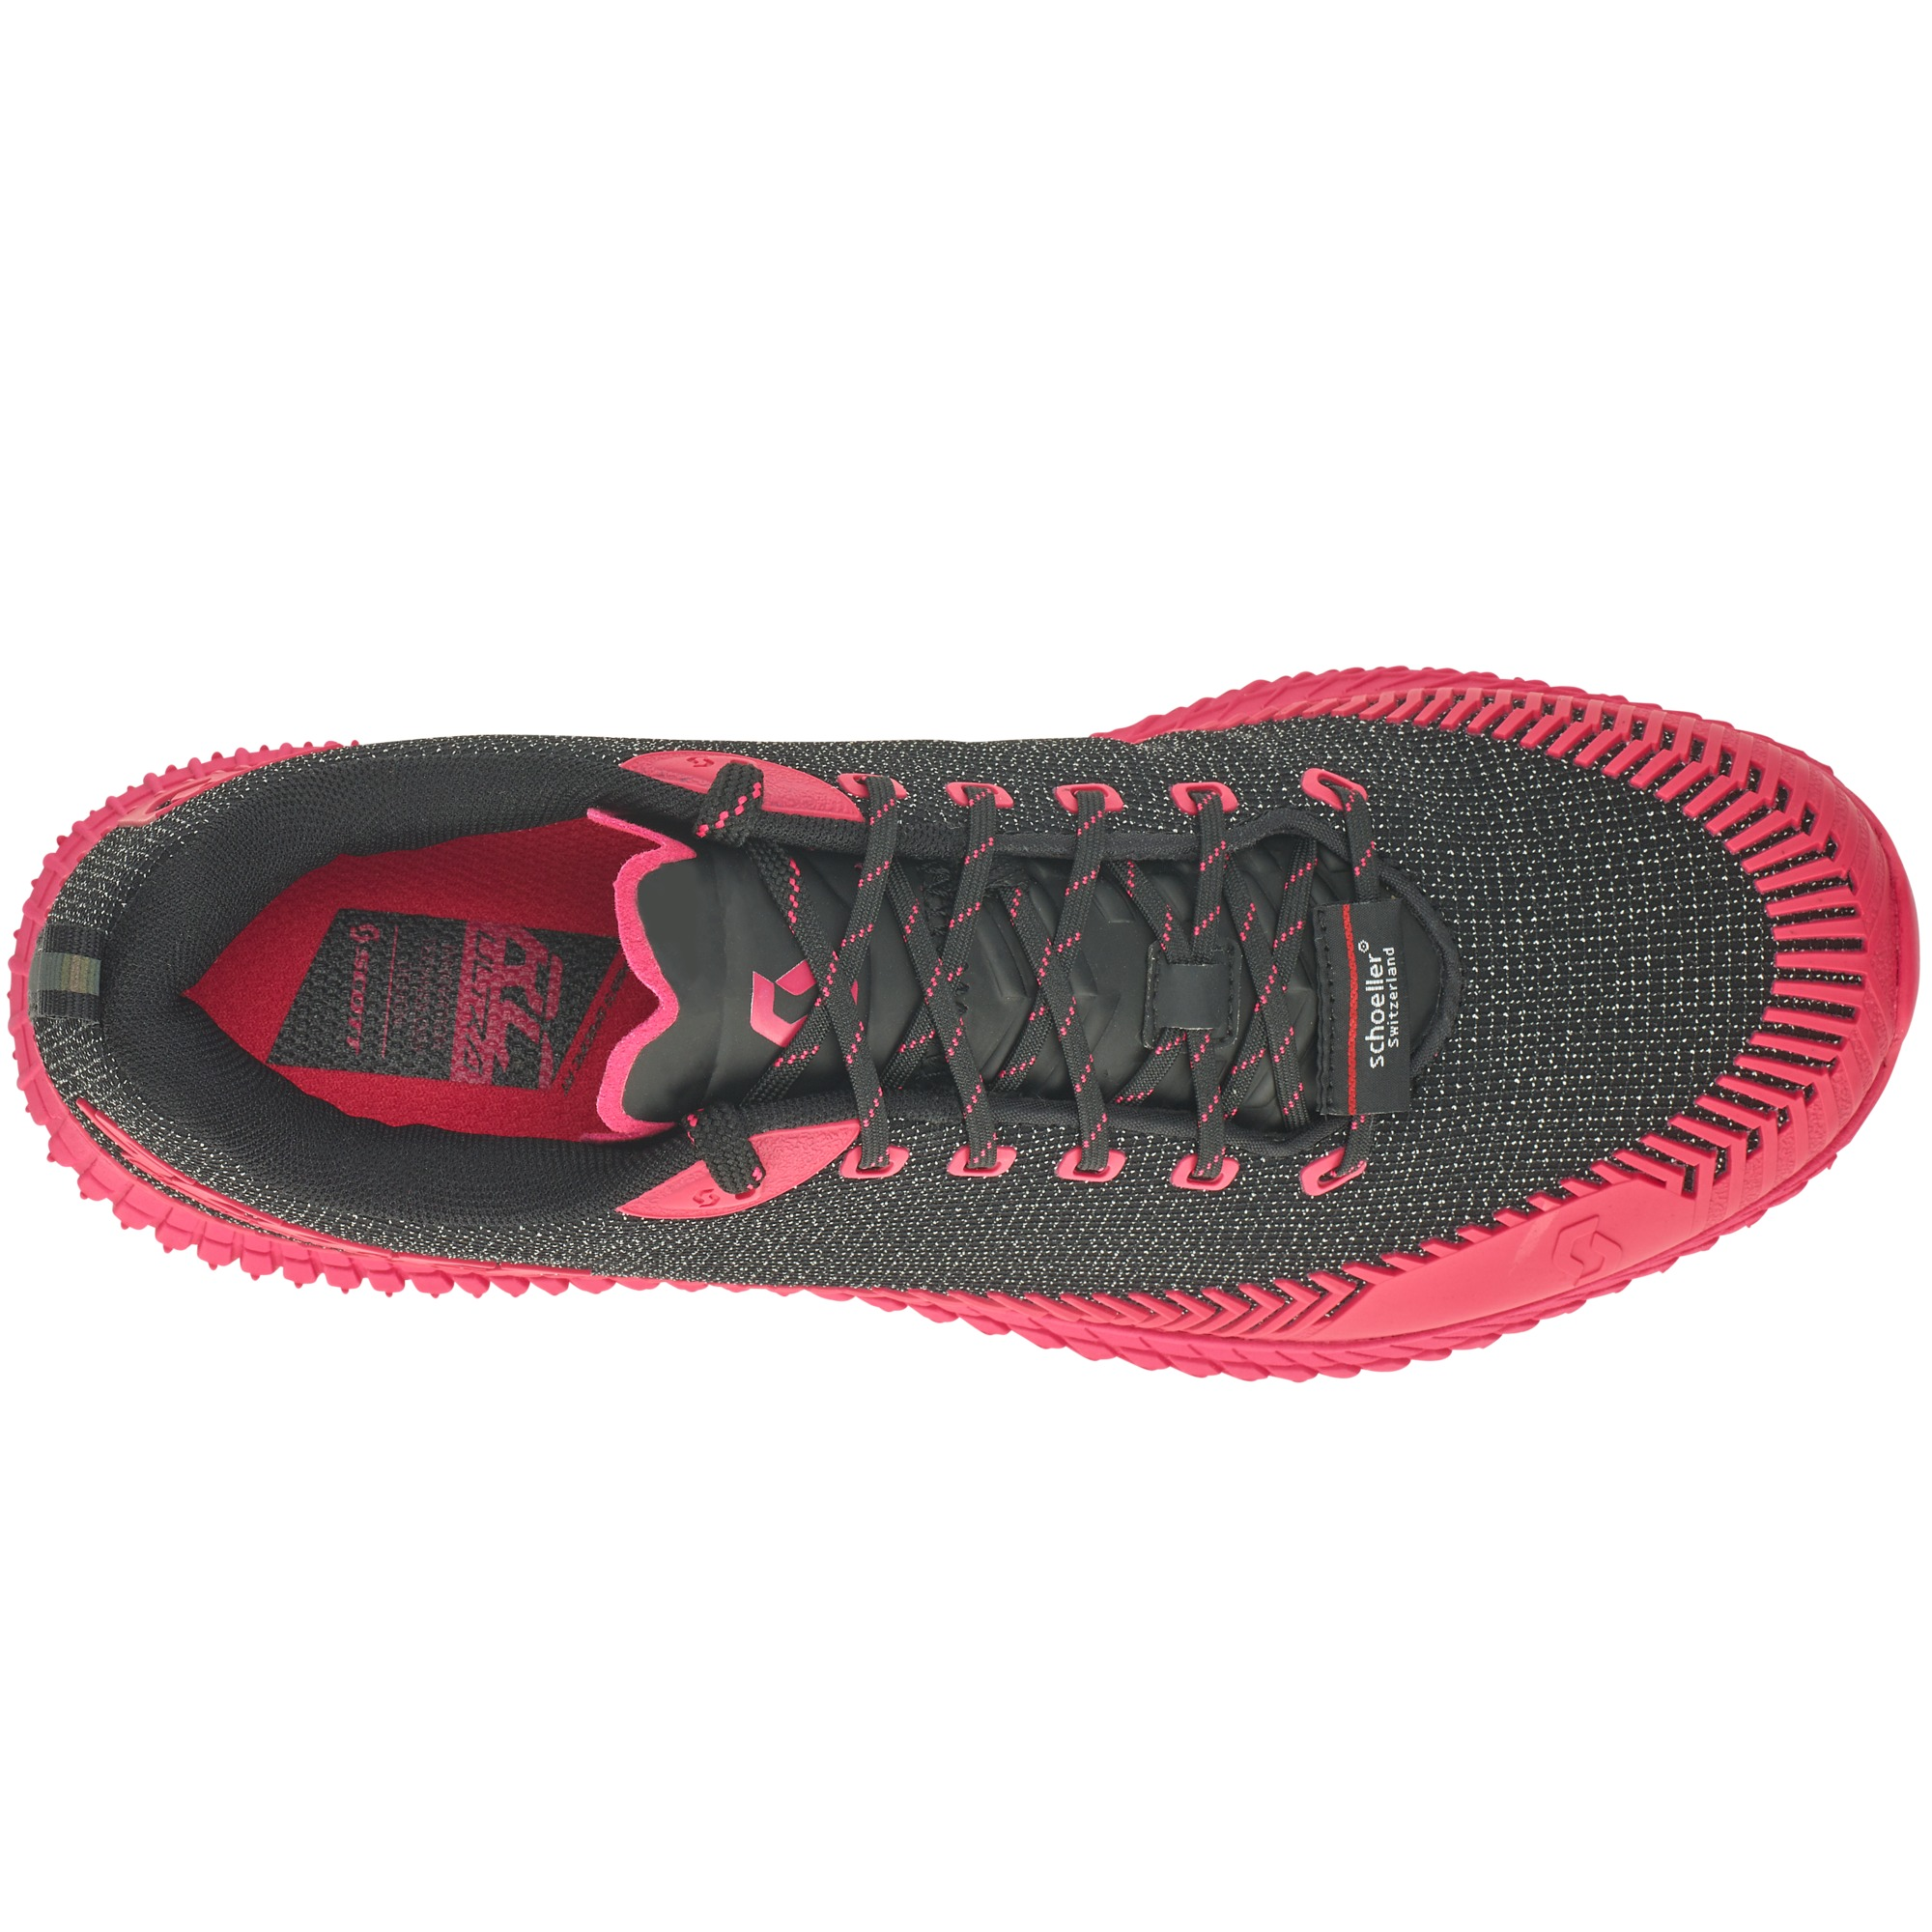 SCOTT Supertrac Ultra RC Women's Shoe